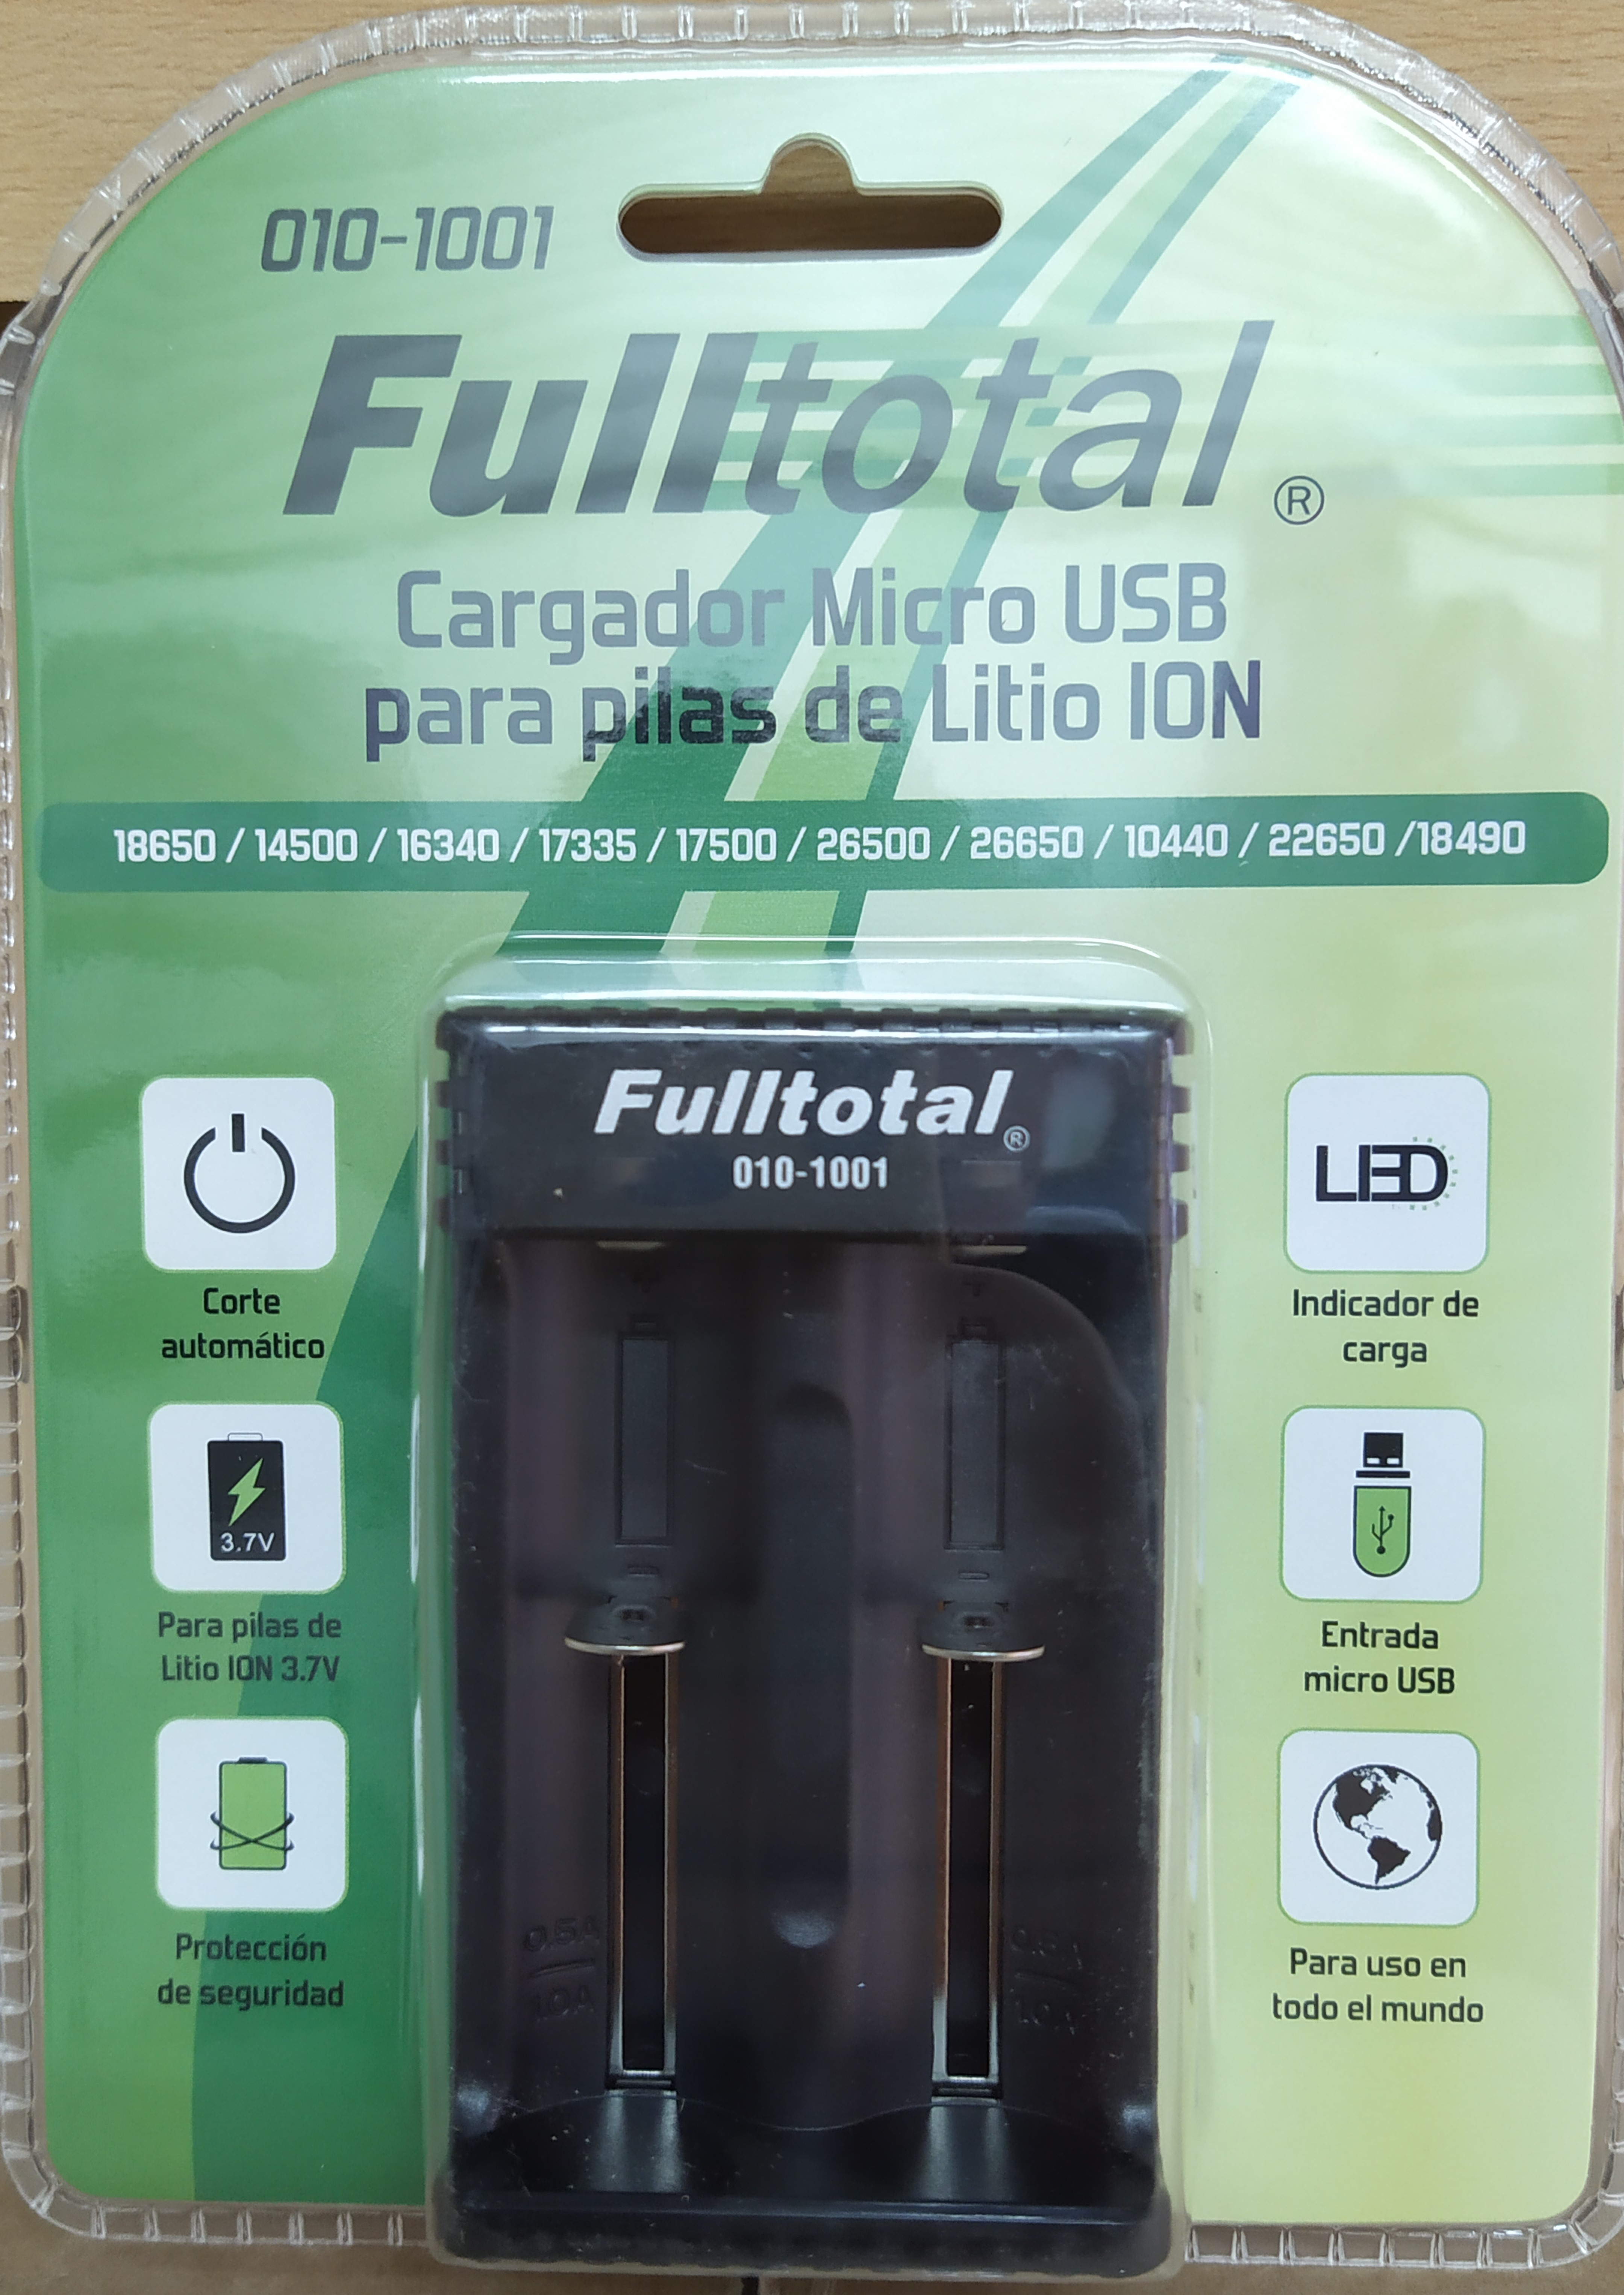 E16 CARGADOR M/USB 2 PILAS DE LITIO ION F-TOTAL 1001